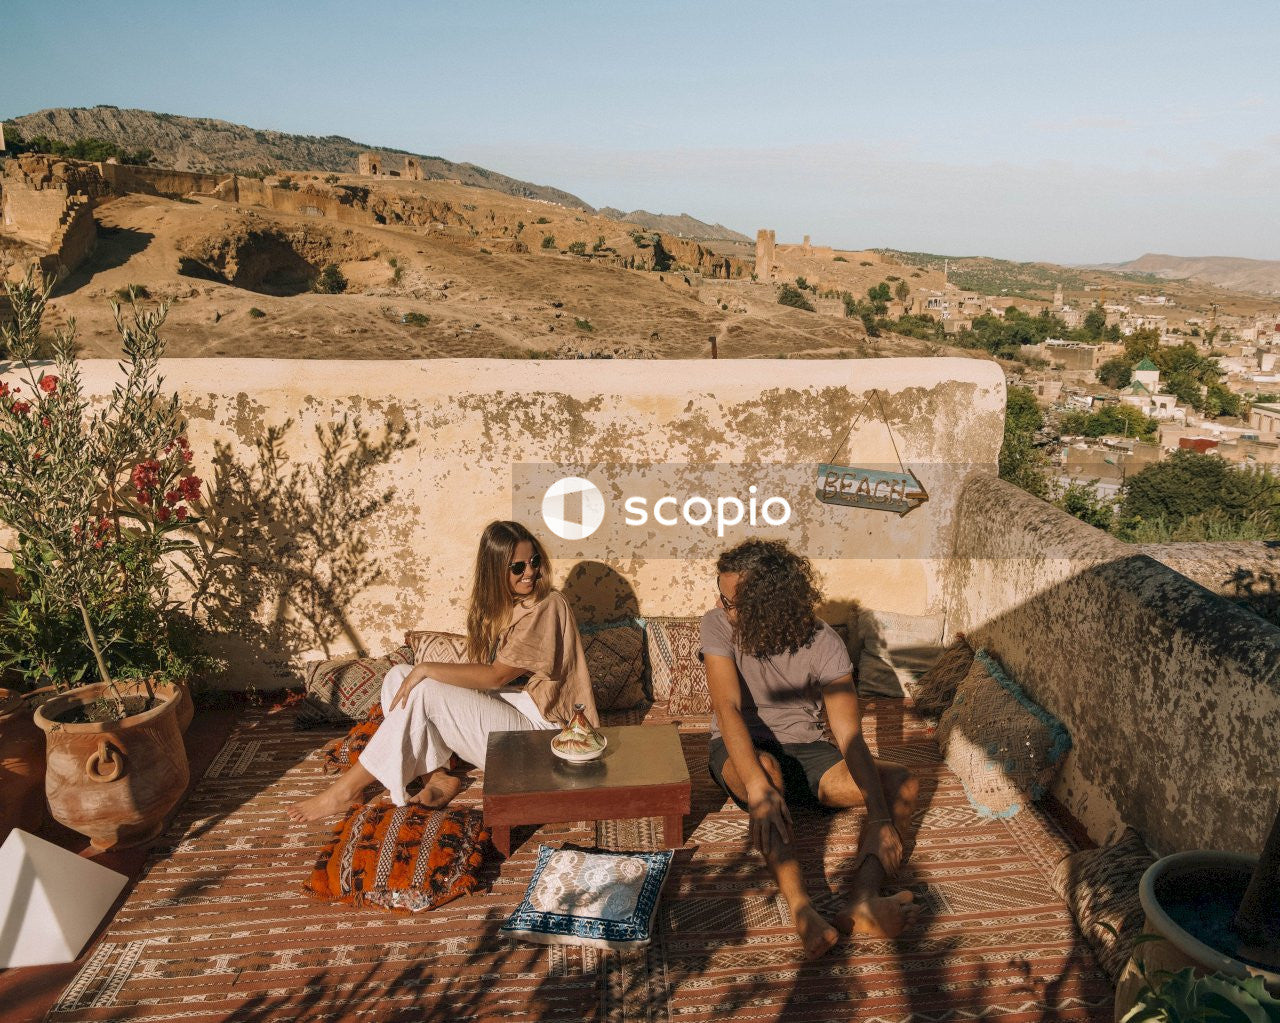 2 women sitting on brown wooden chair